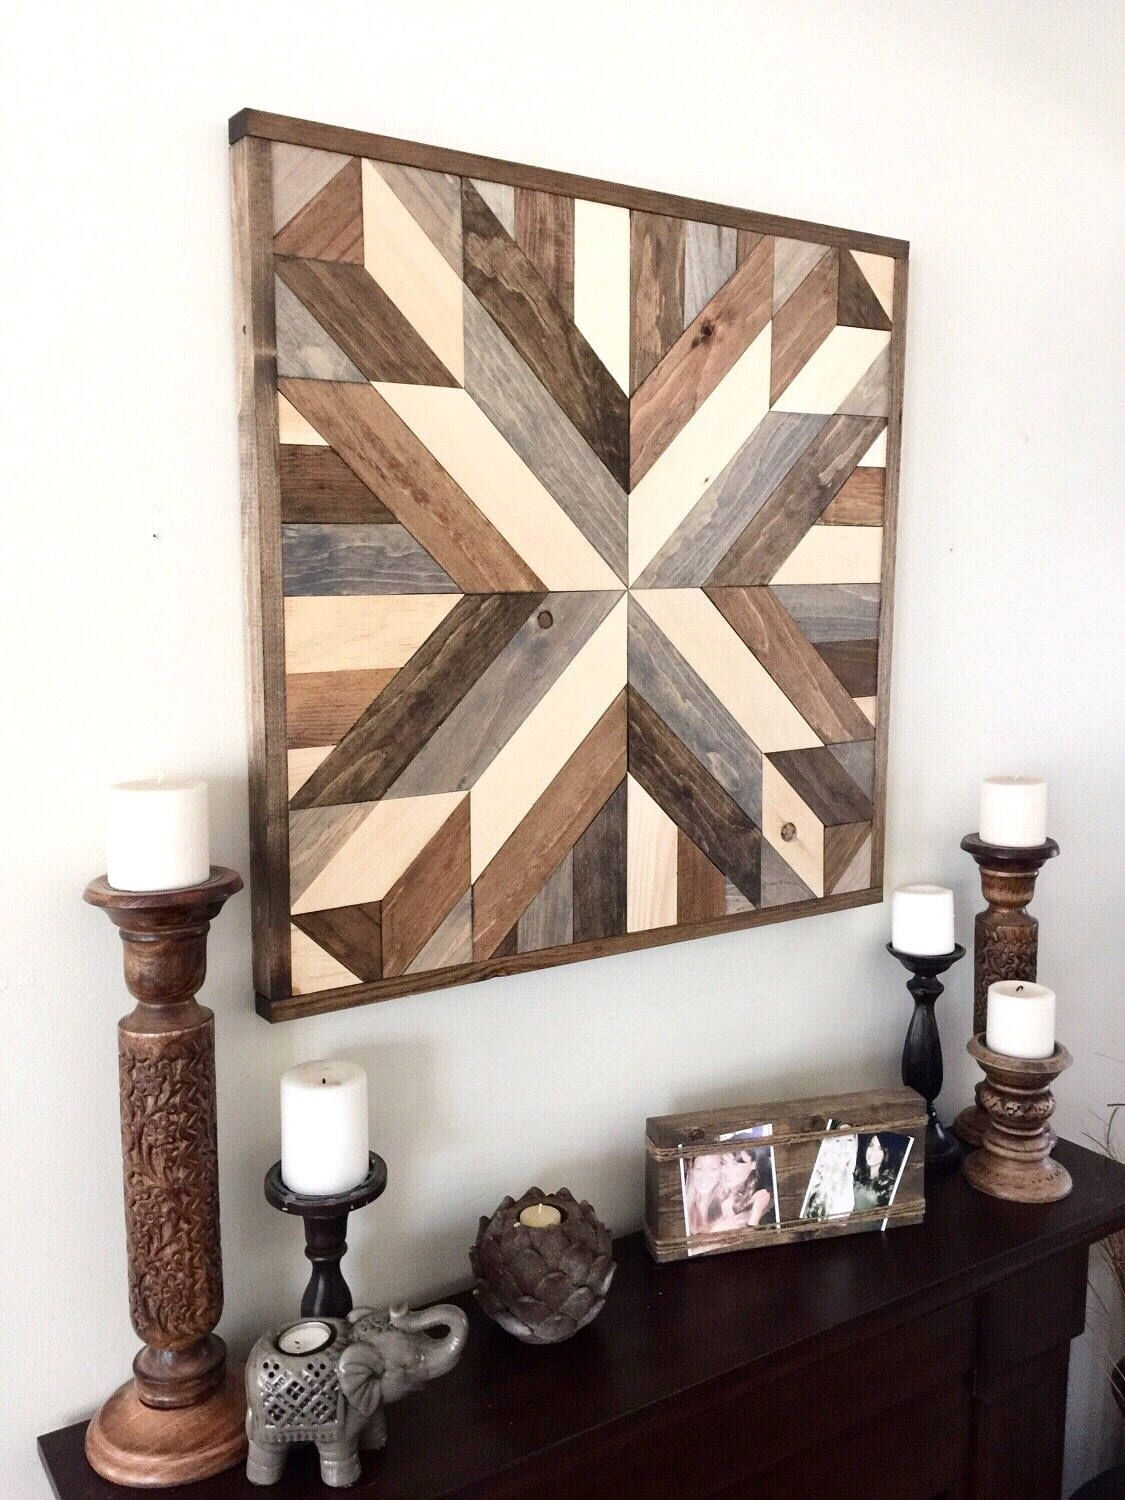 Reclaimed Wood Wall Art, Wood Art, Rustic Wall Decor, Farmhouse Regarding Best And Newest Reclaimed Wood Wall Art (View 9 of 15)